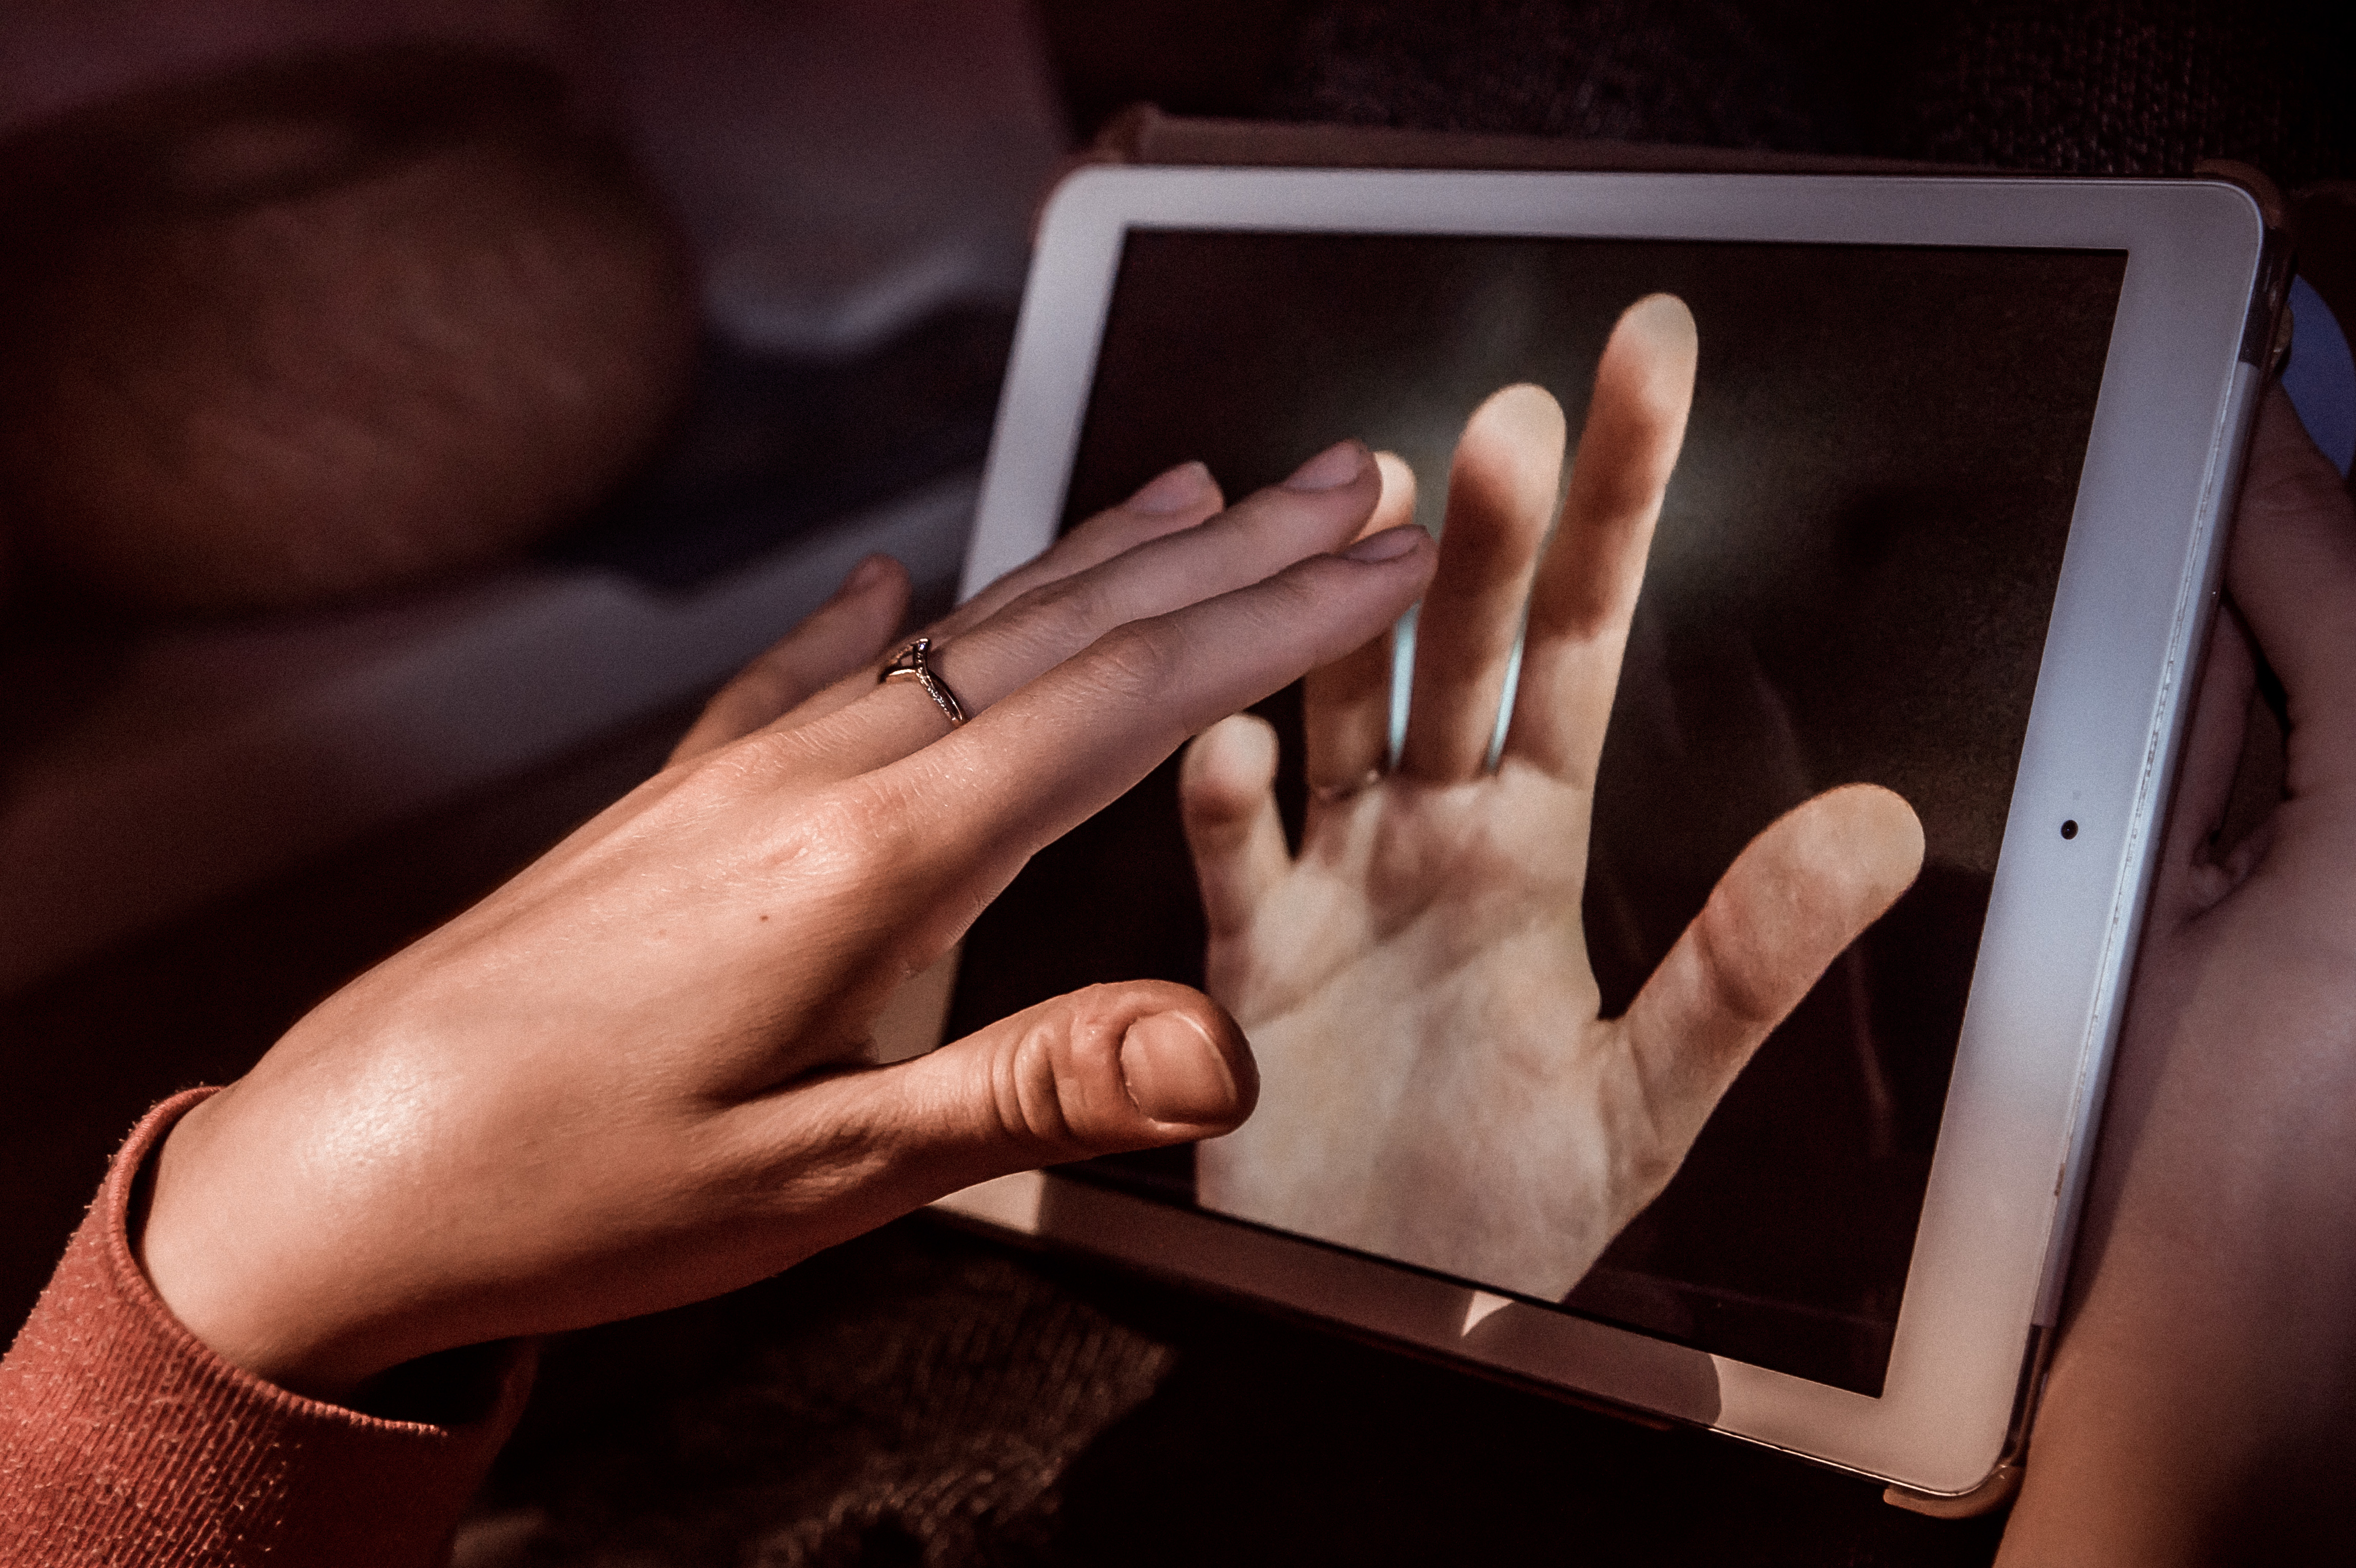 Long distance relationship hands touching through ipad